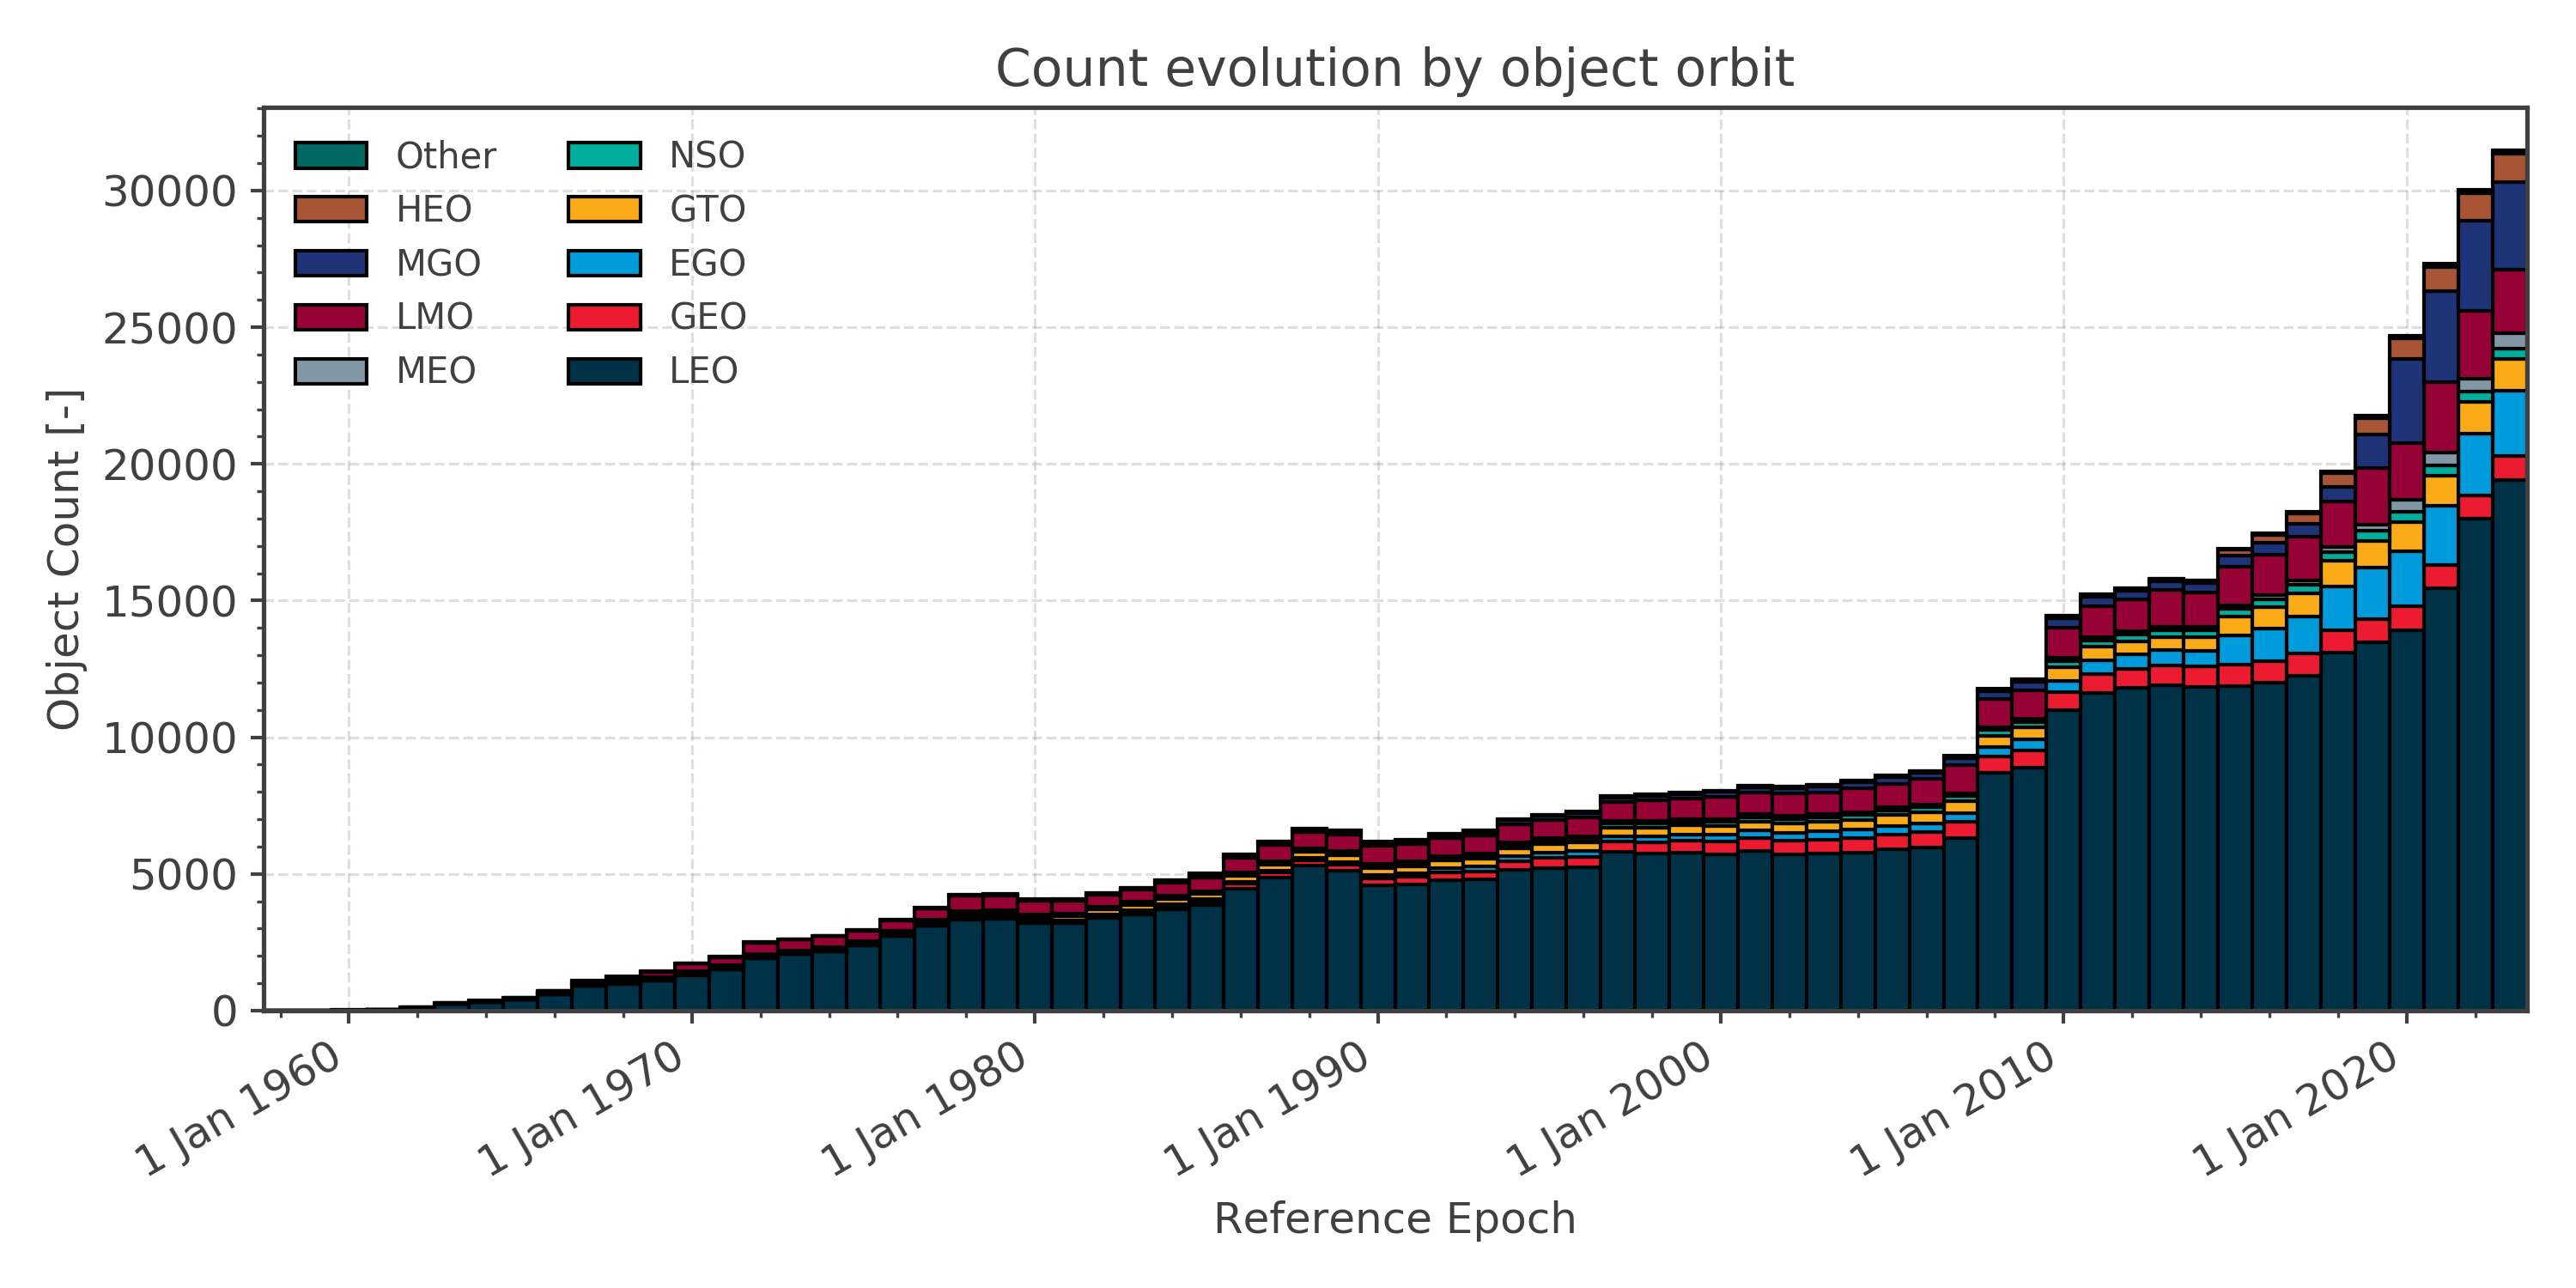 Objects in orbit count over time subdivided in orbit classes